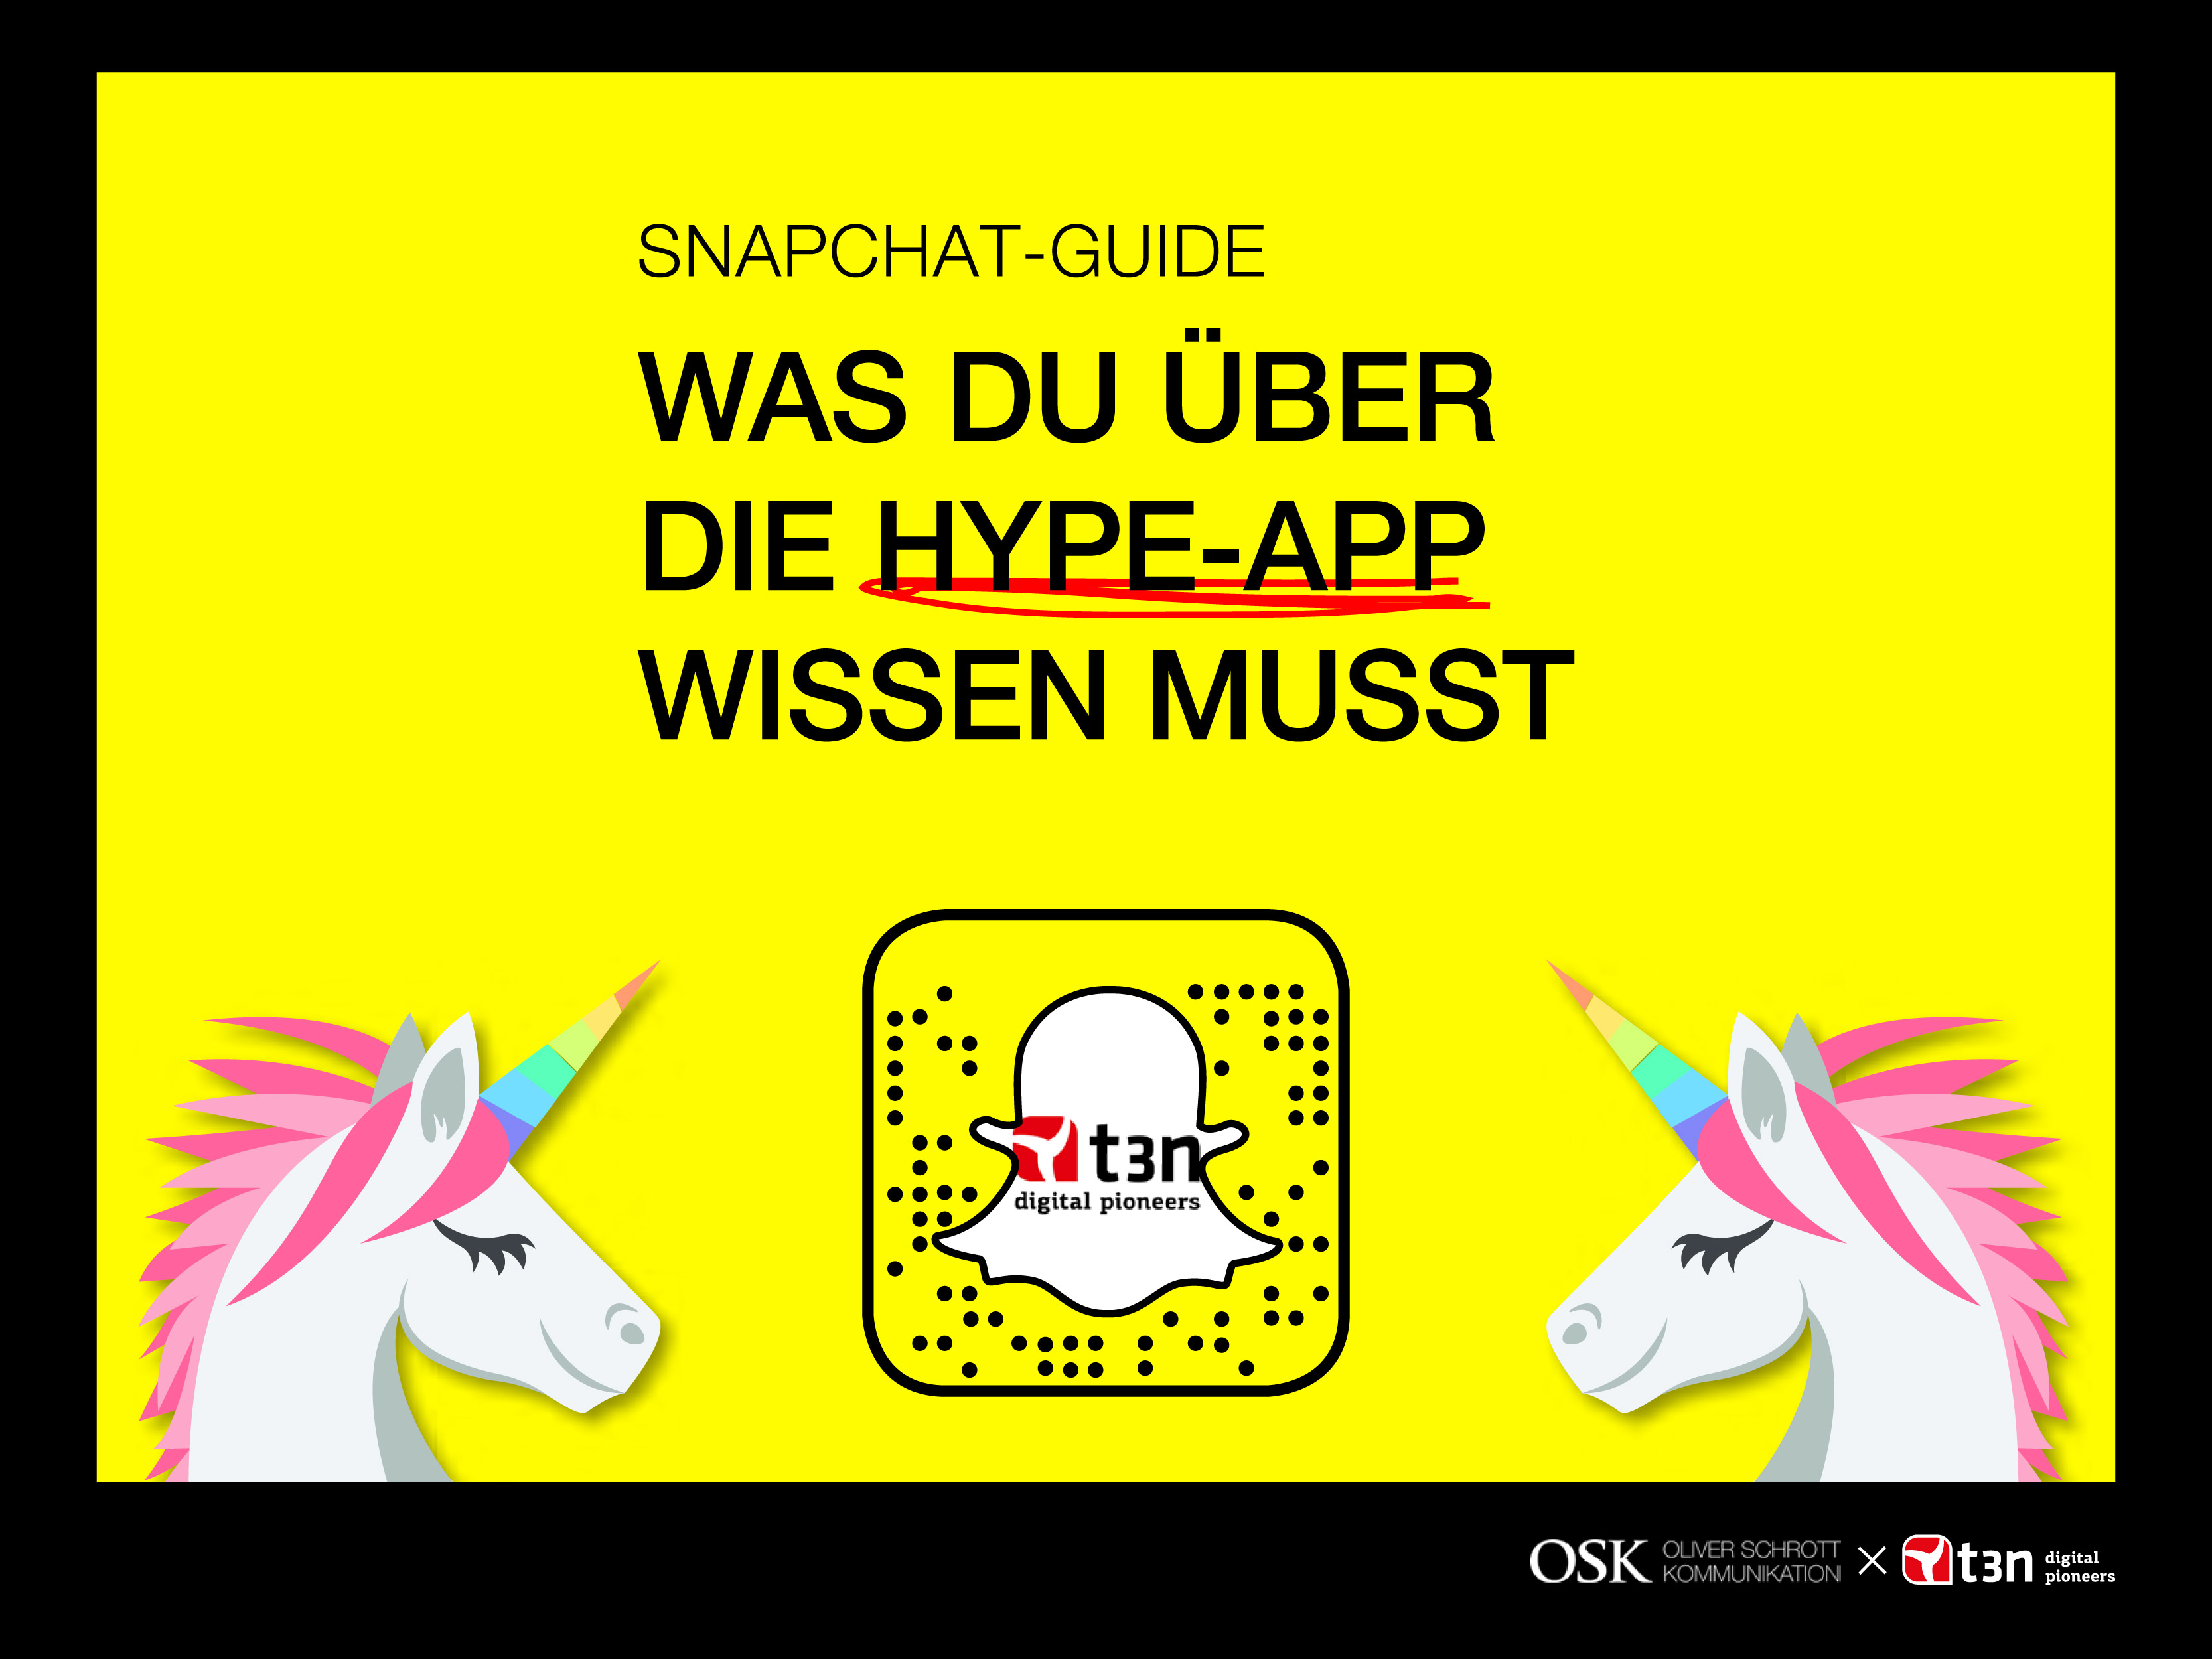 snapchat-guide-cover